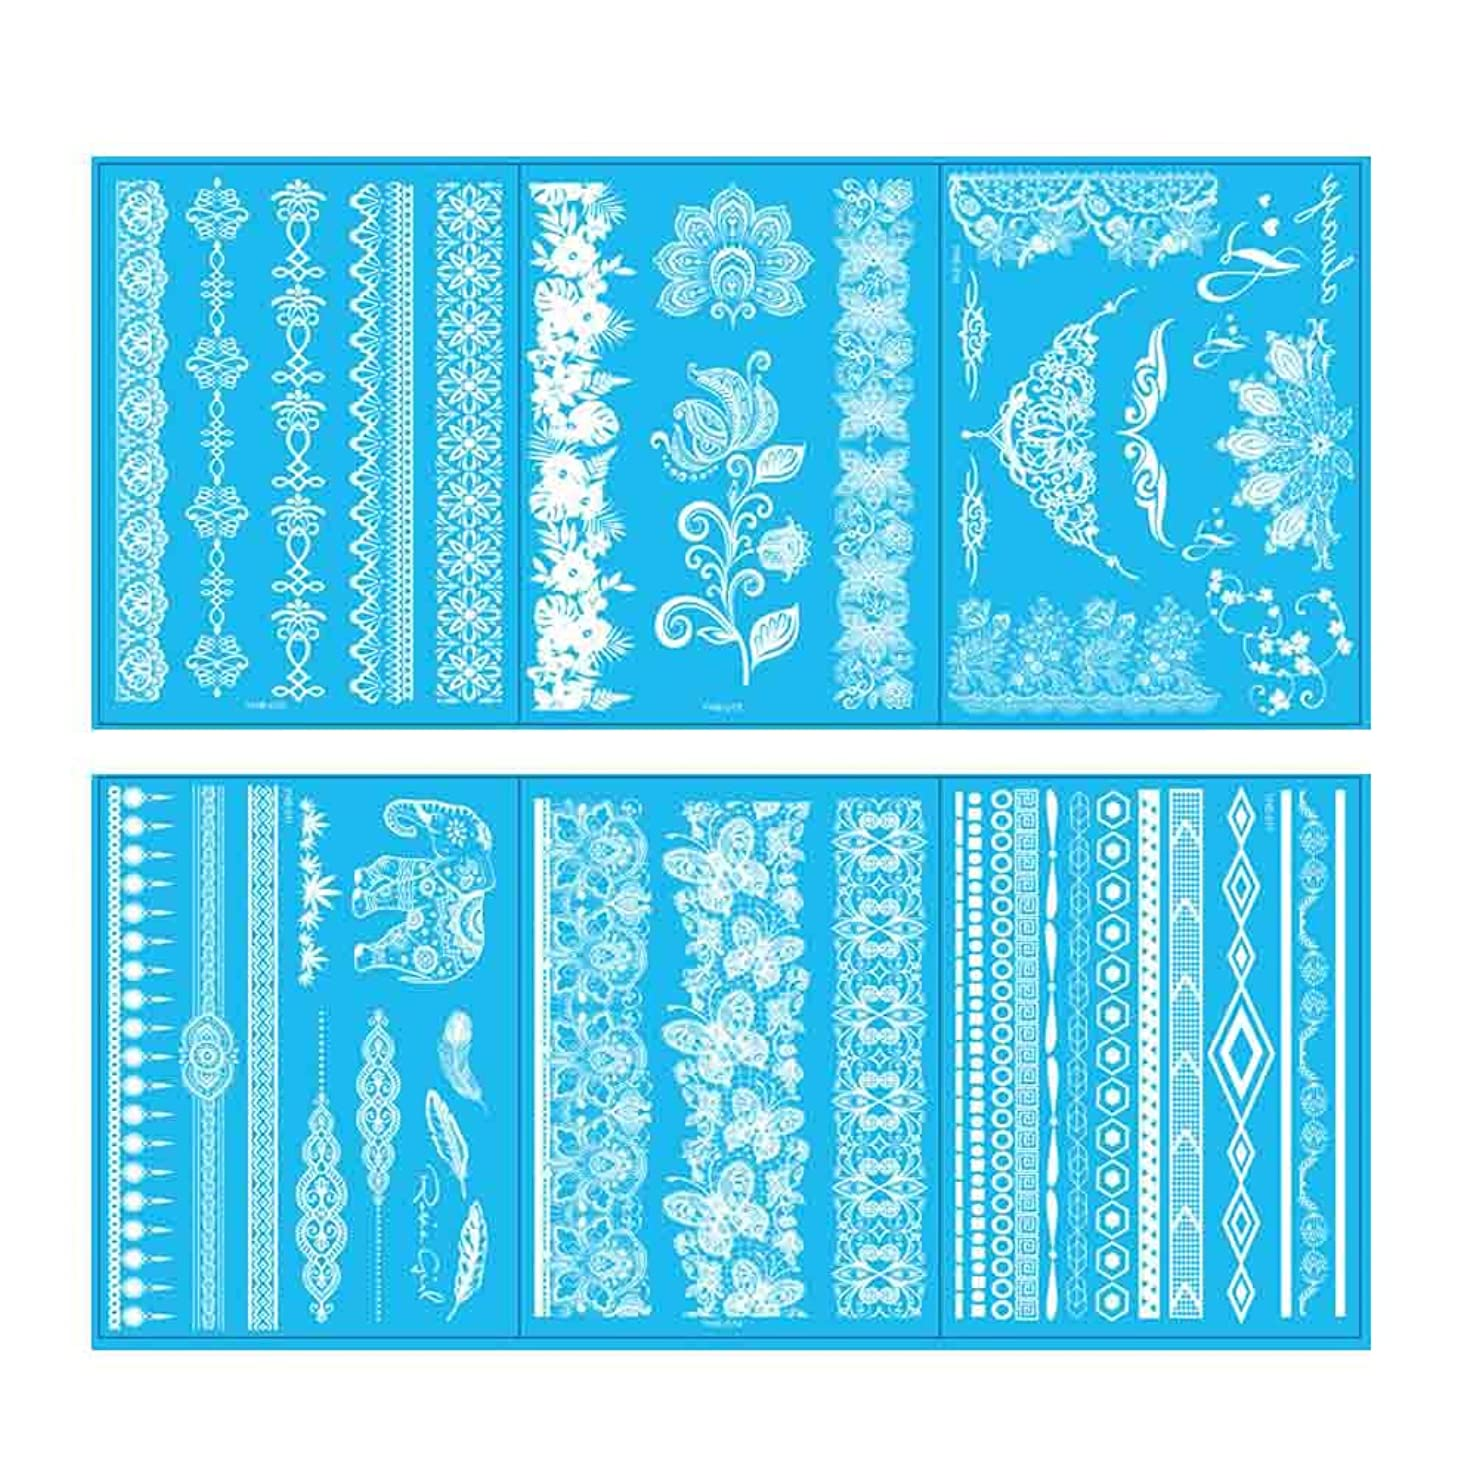 VanTattoo (6Sheets) Fashion Body Art Stickers Removable Waterproof Temporary Tattoo –White lace tattoo?jewelry